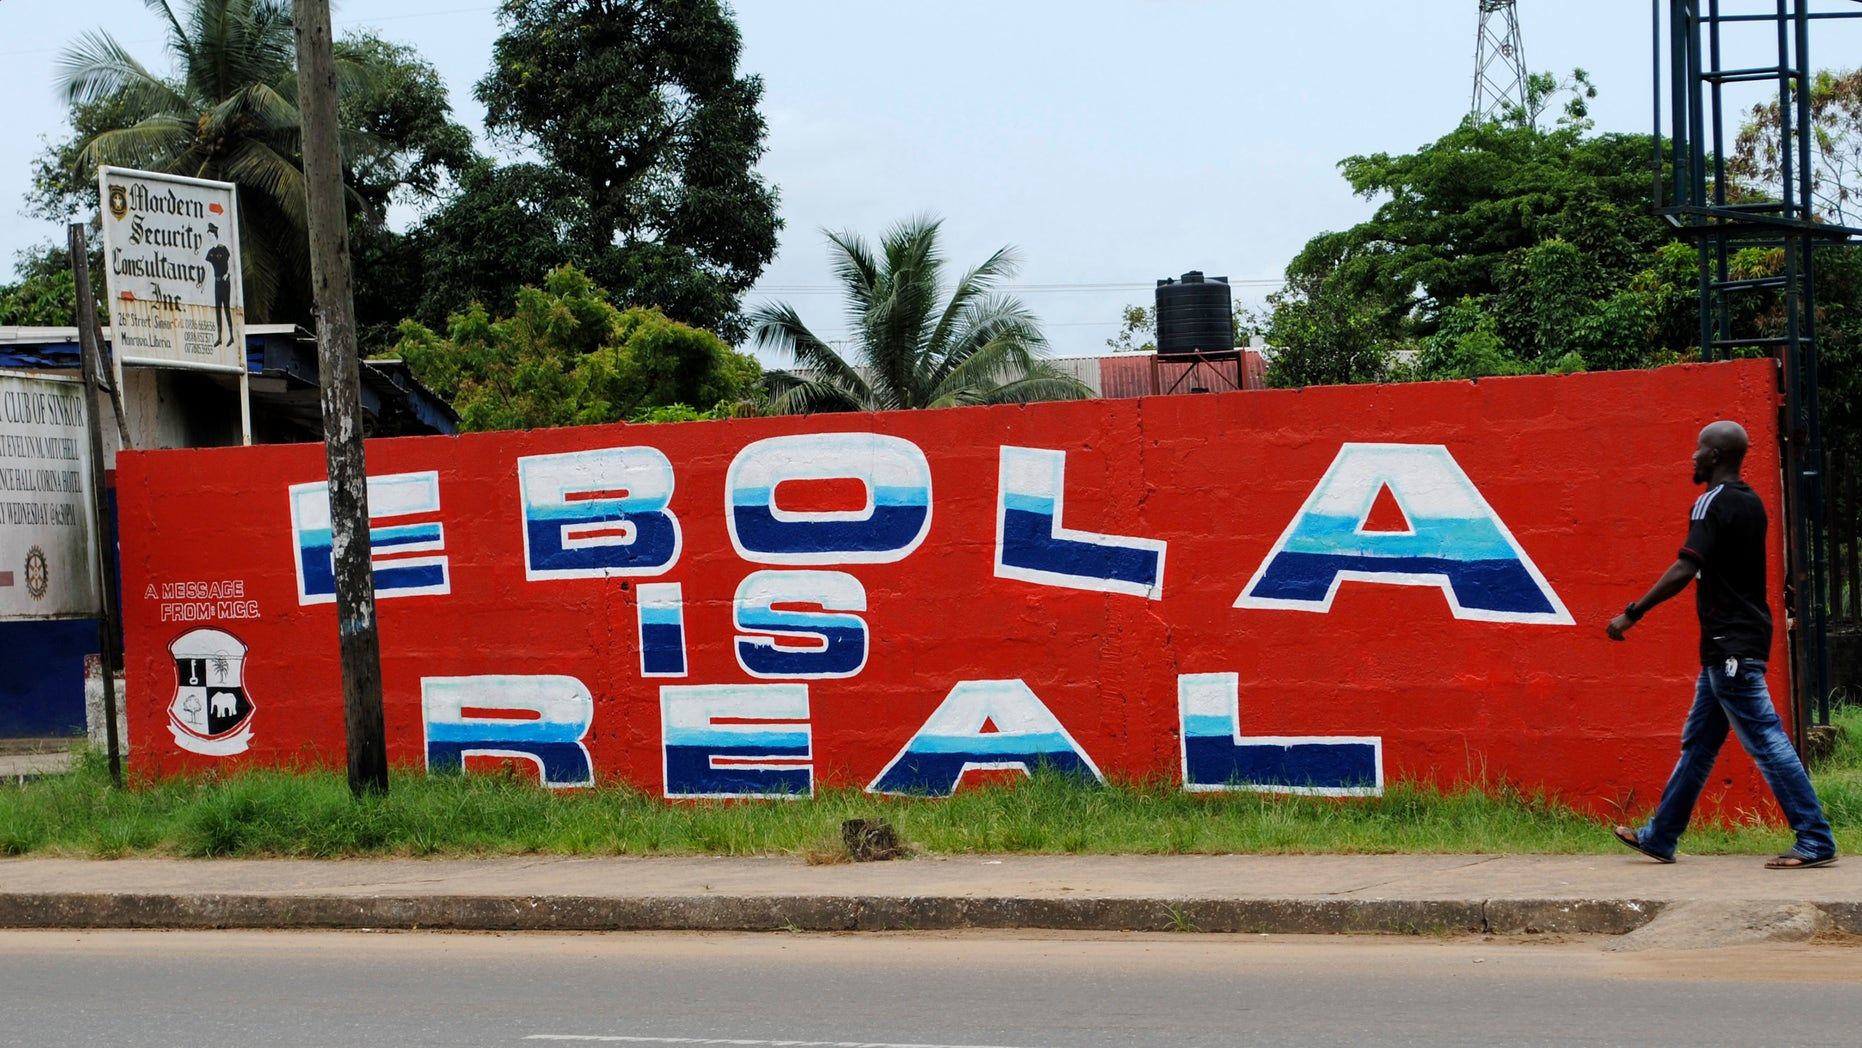 """A man walks by a mural reading """"Ebola is real"""" in Monrovia, Liberia, October 12, 2014. Ebola, a hemorrhagic fever, has killed more than 4,000 people since March in an epidemic centered around Liberia, Guinea and Sierra Leone. REUTERS/James Giahyue"""